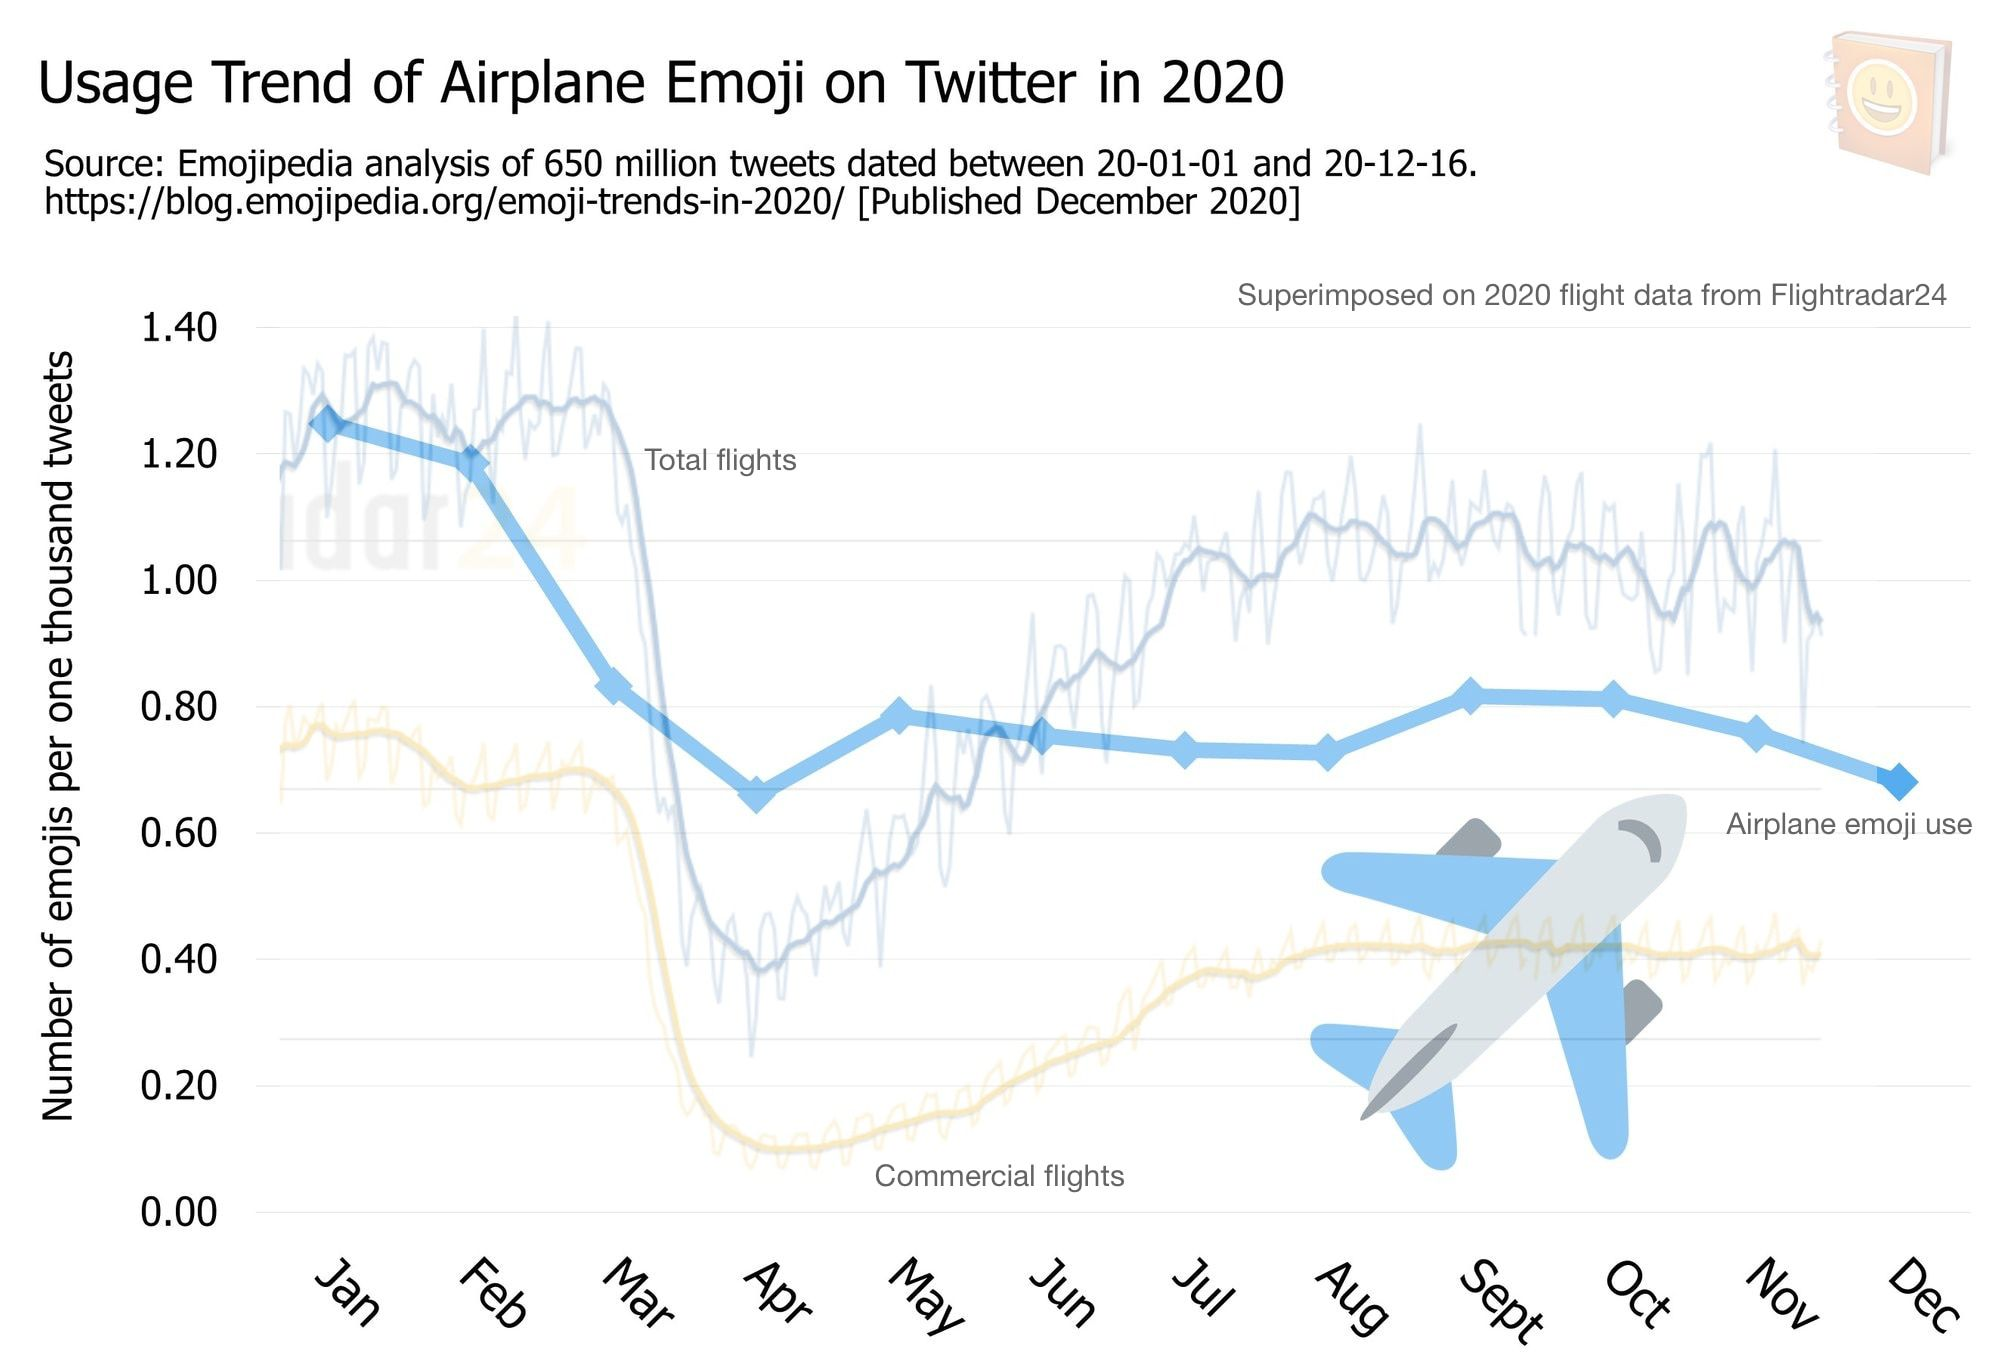 Emoji-Trends-In-2020---Usage-Trend-of-Airplane-Emoji-on-Twitter-in-2020-flightradar24